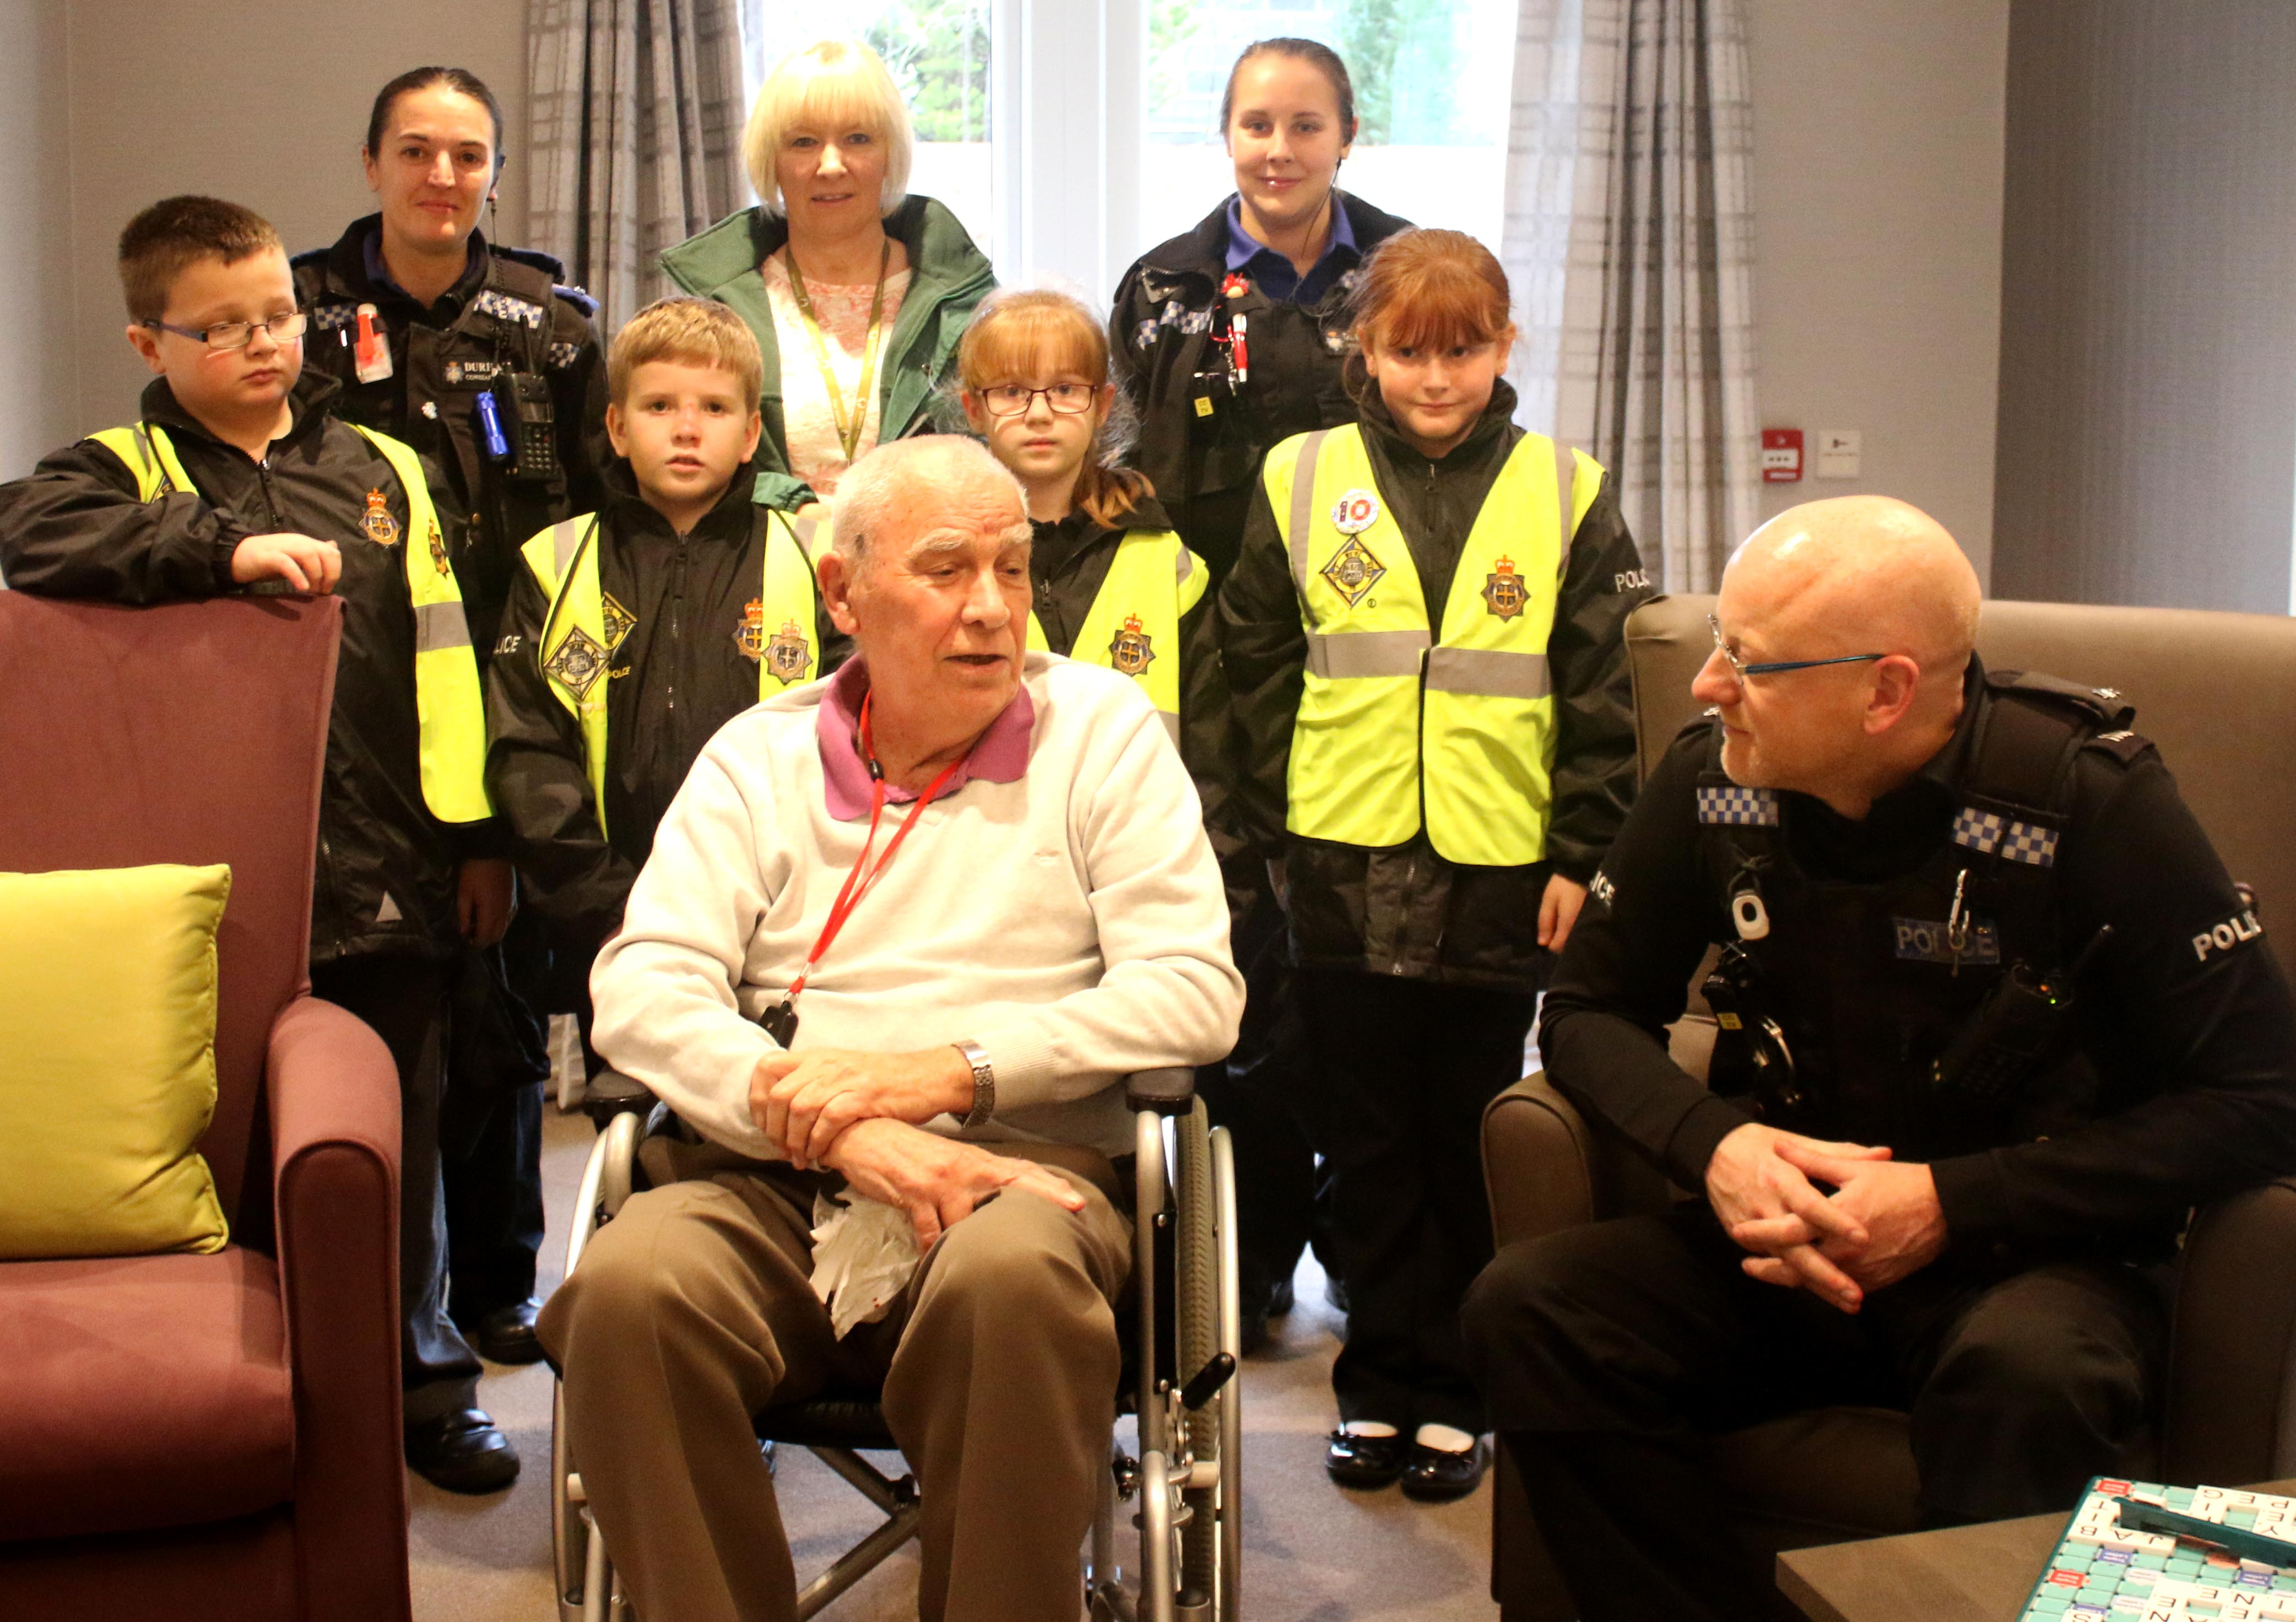 Retired Policeman Meets Mini Police on Site of Former Police Station